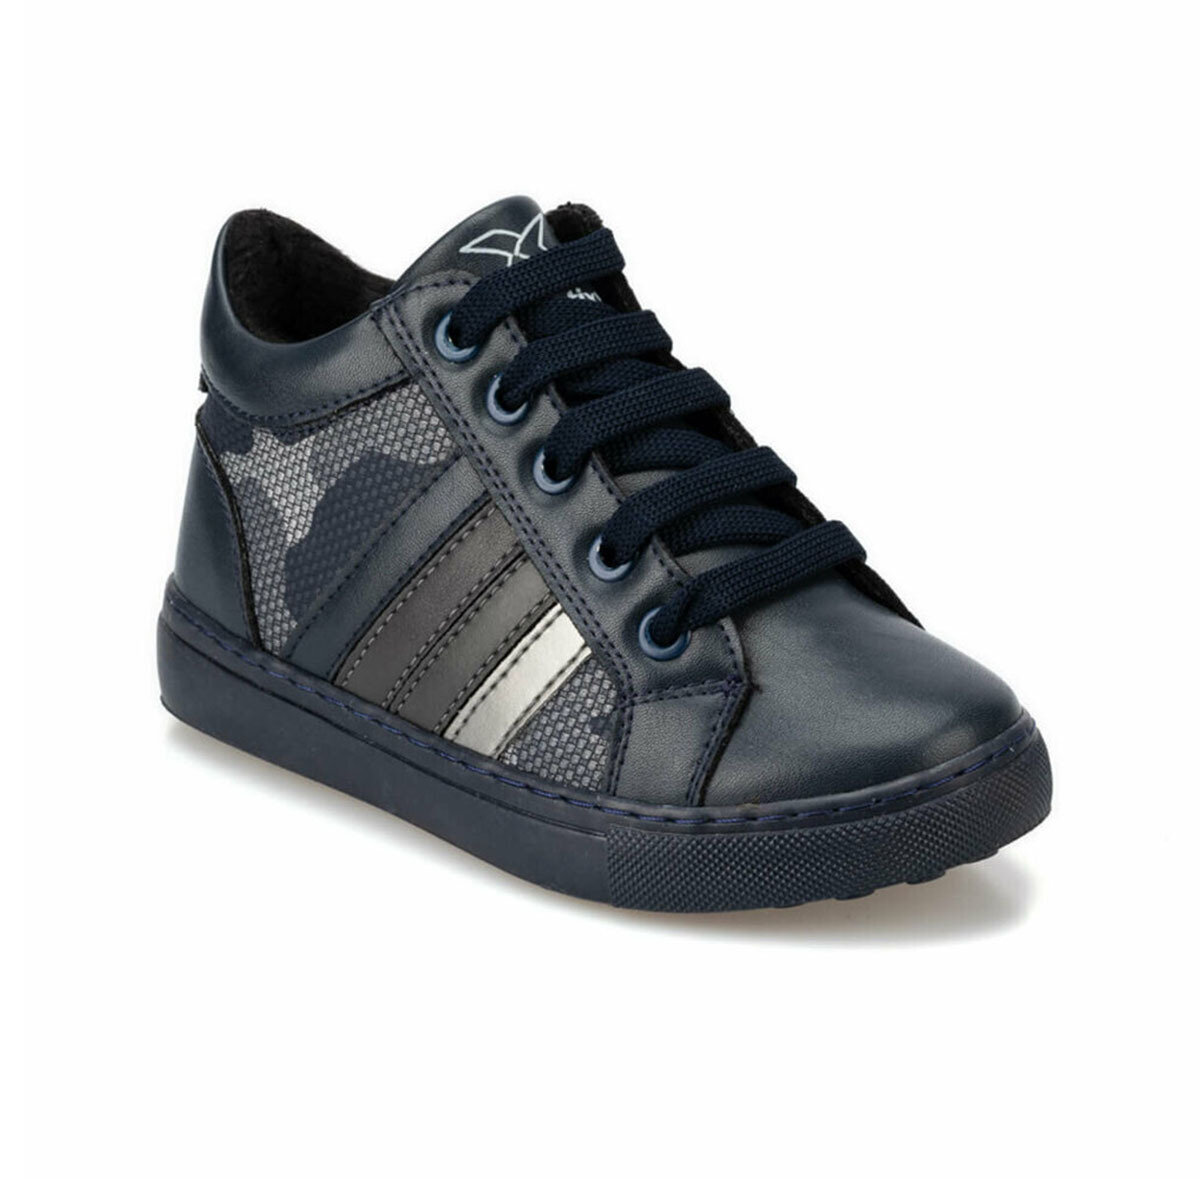 FLO SYNDRA 9PR Navy Blue Male Child Sneaker Shoes KINETIX